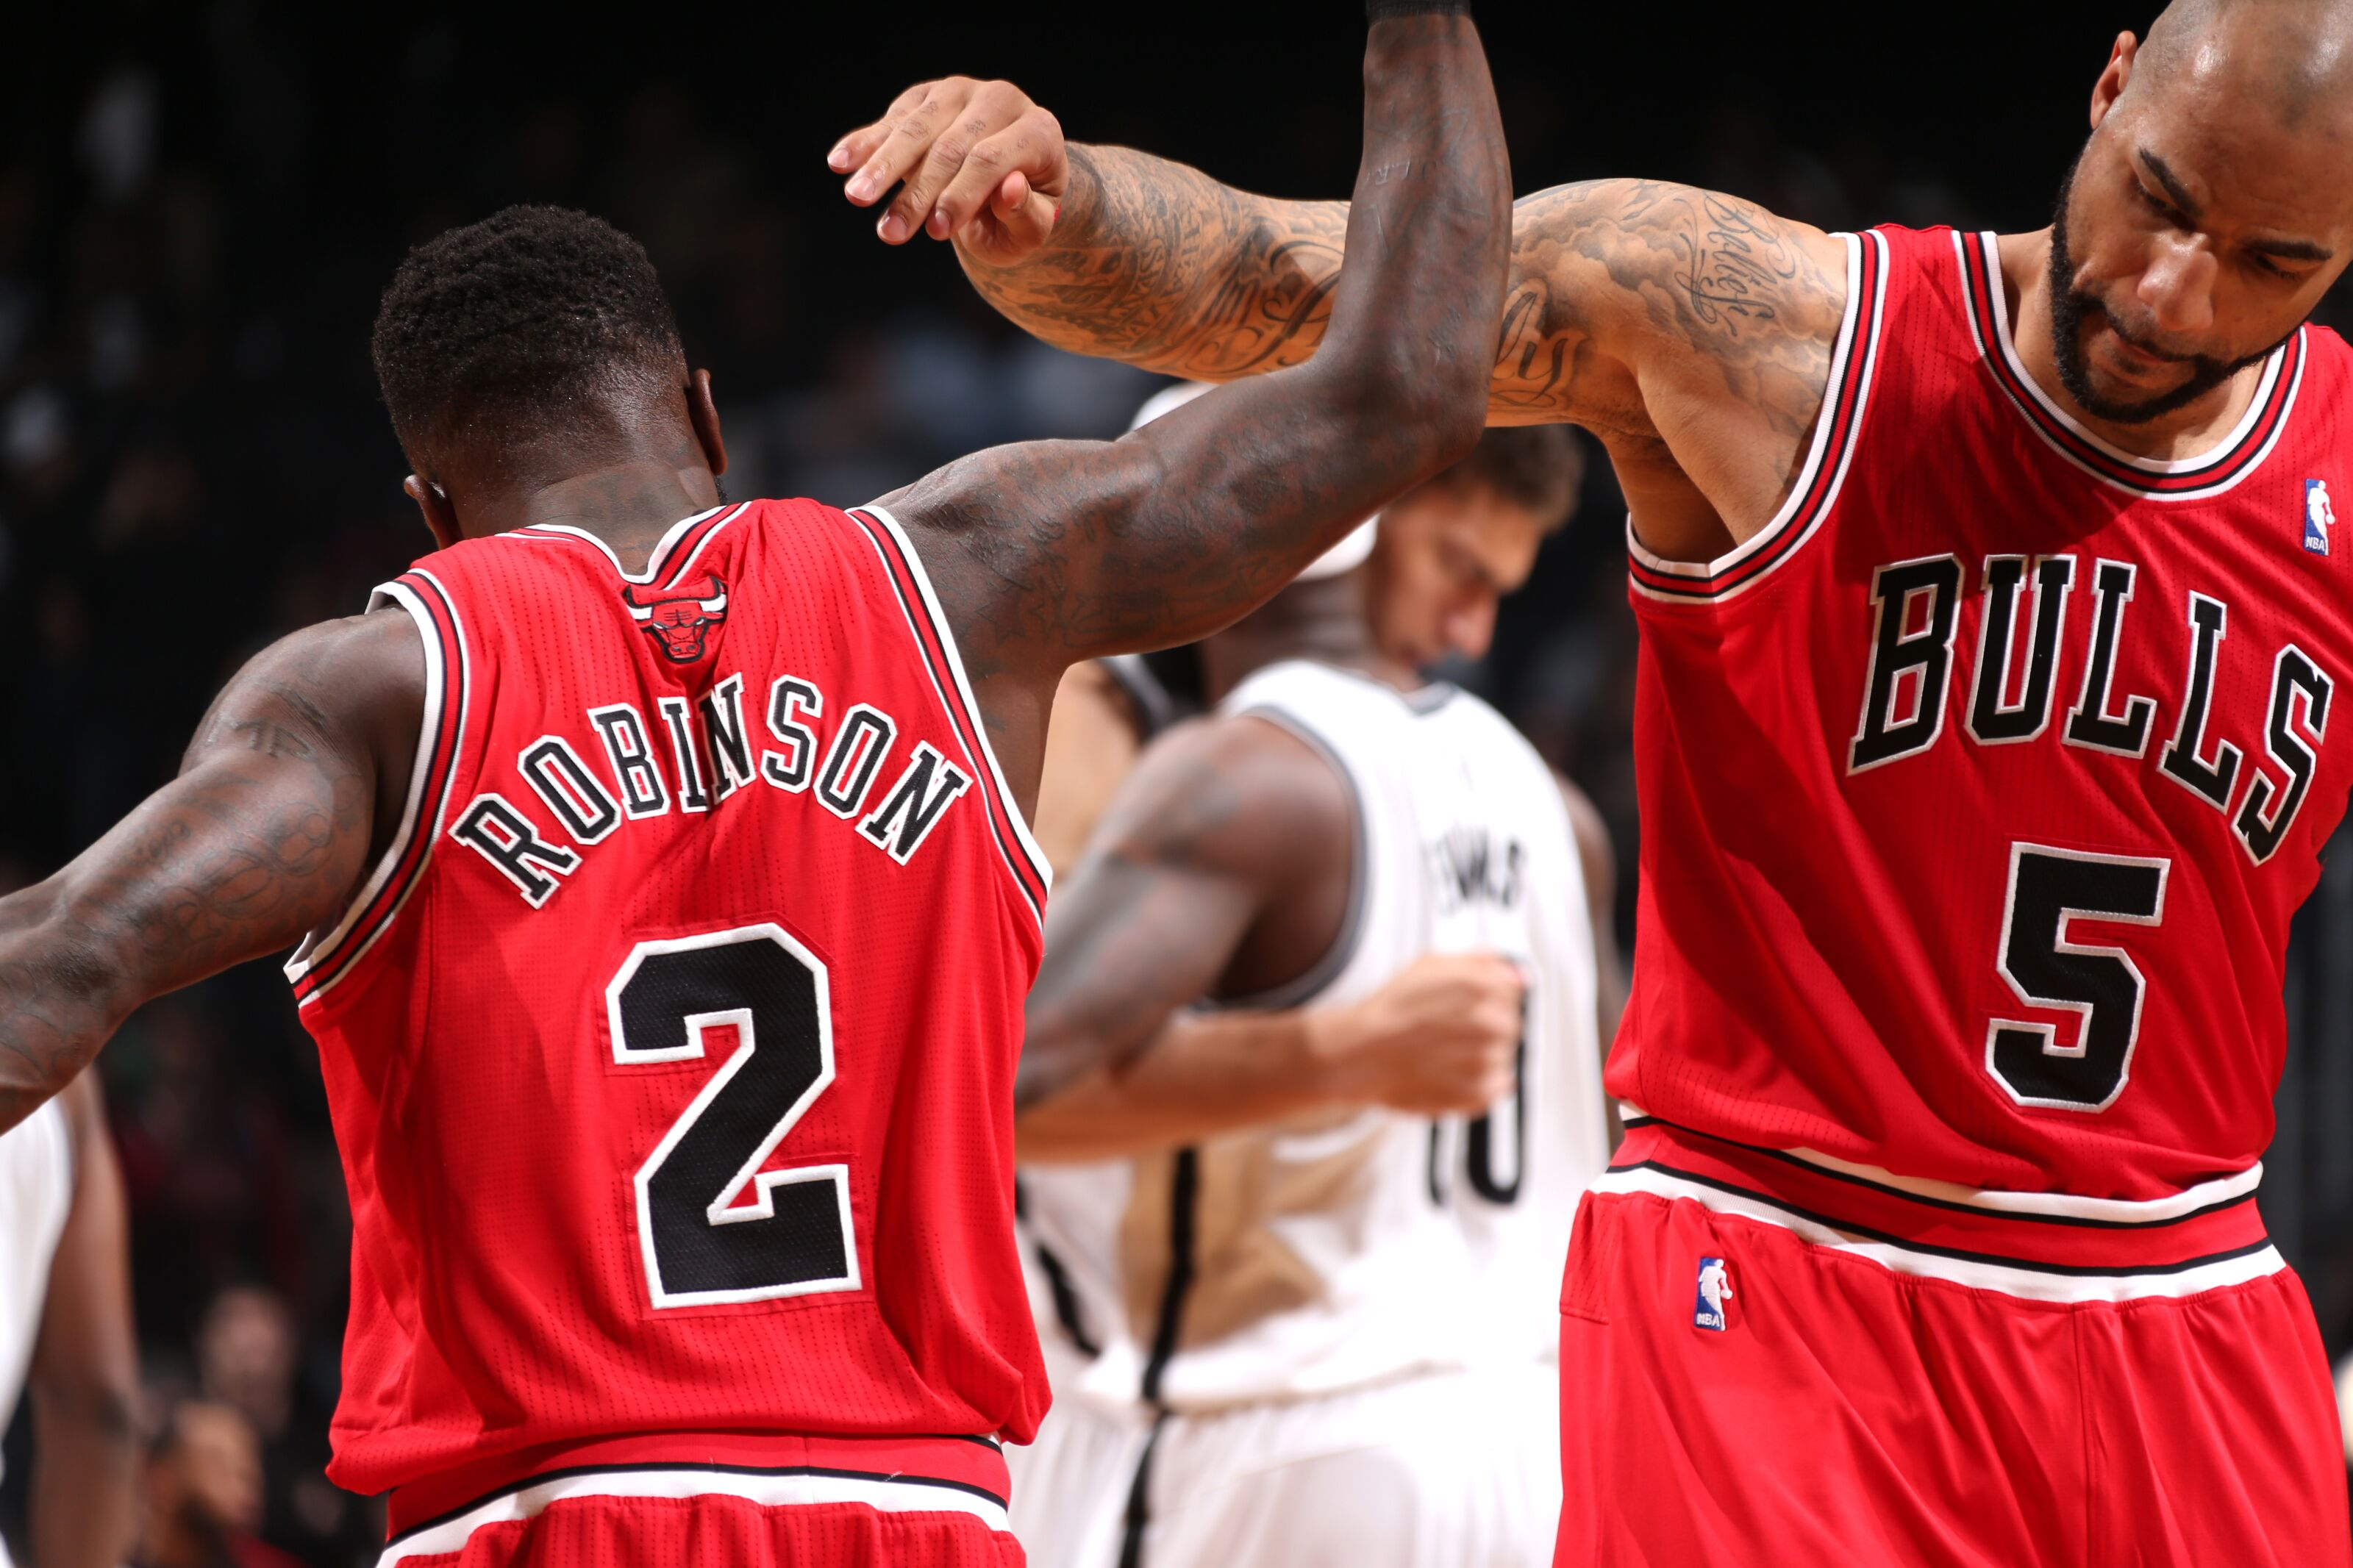 Nate Robinson returns to Chicago for All-Star weekend with Carlos Boozer